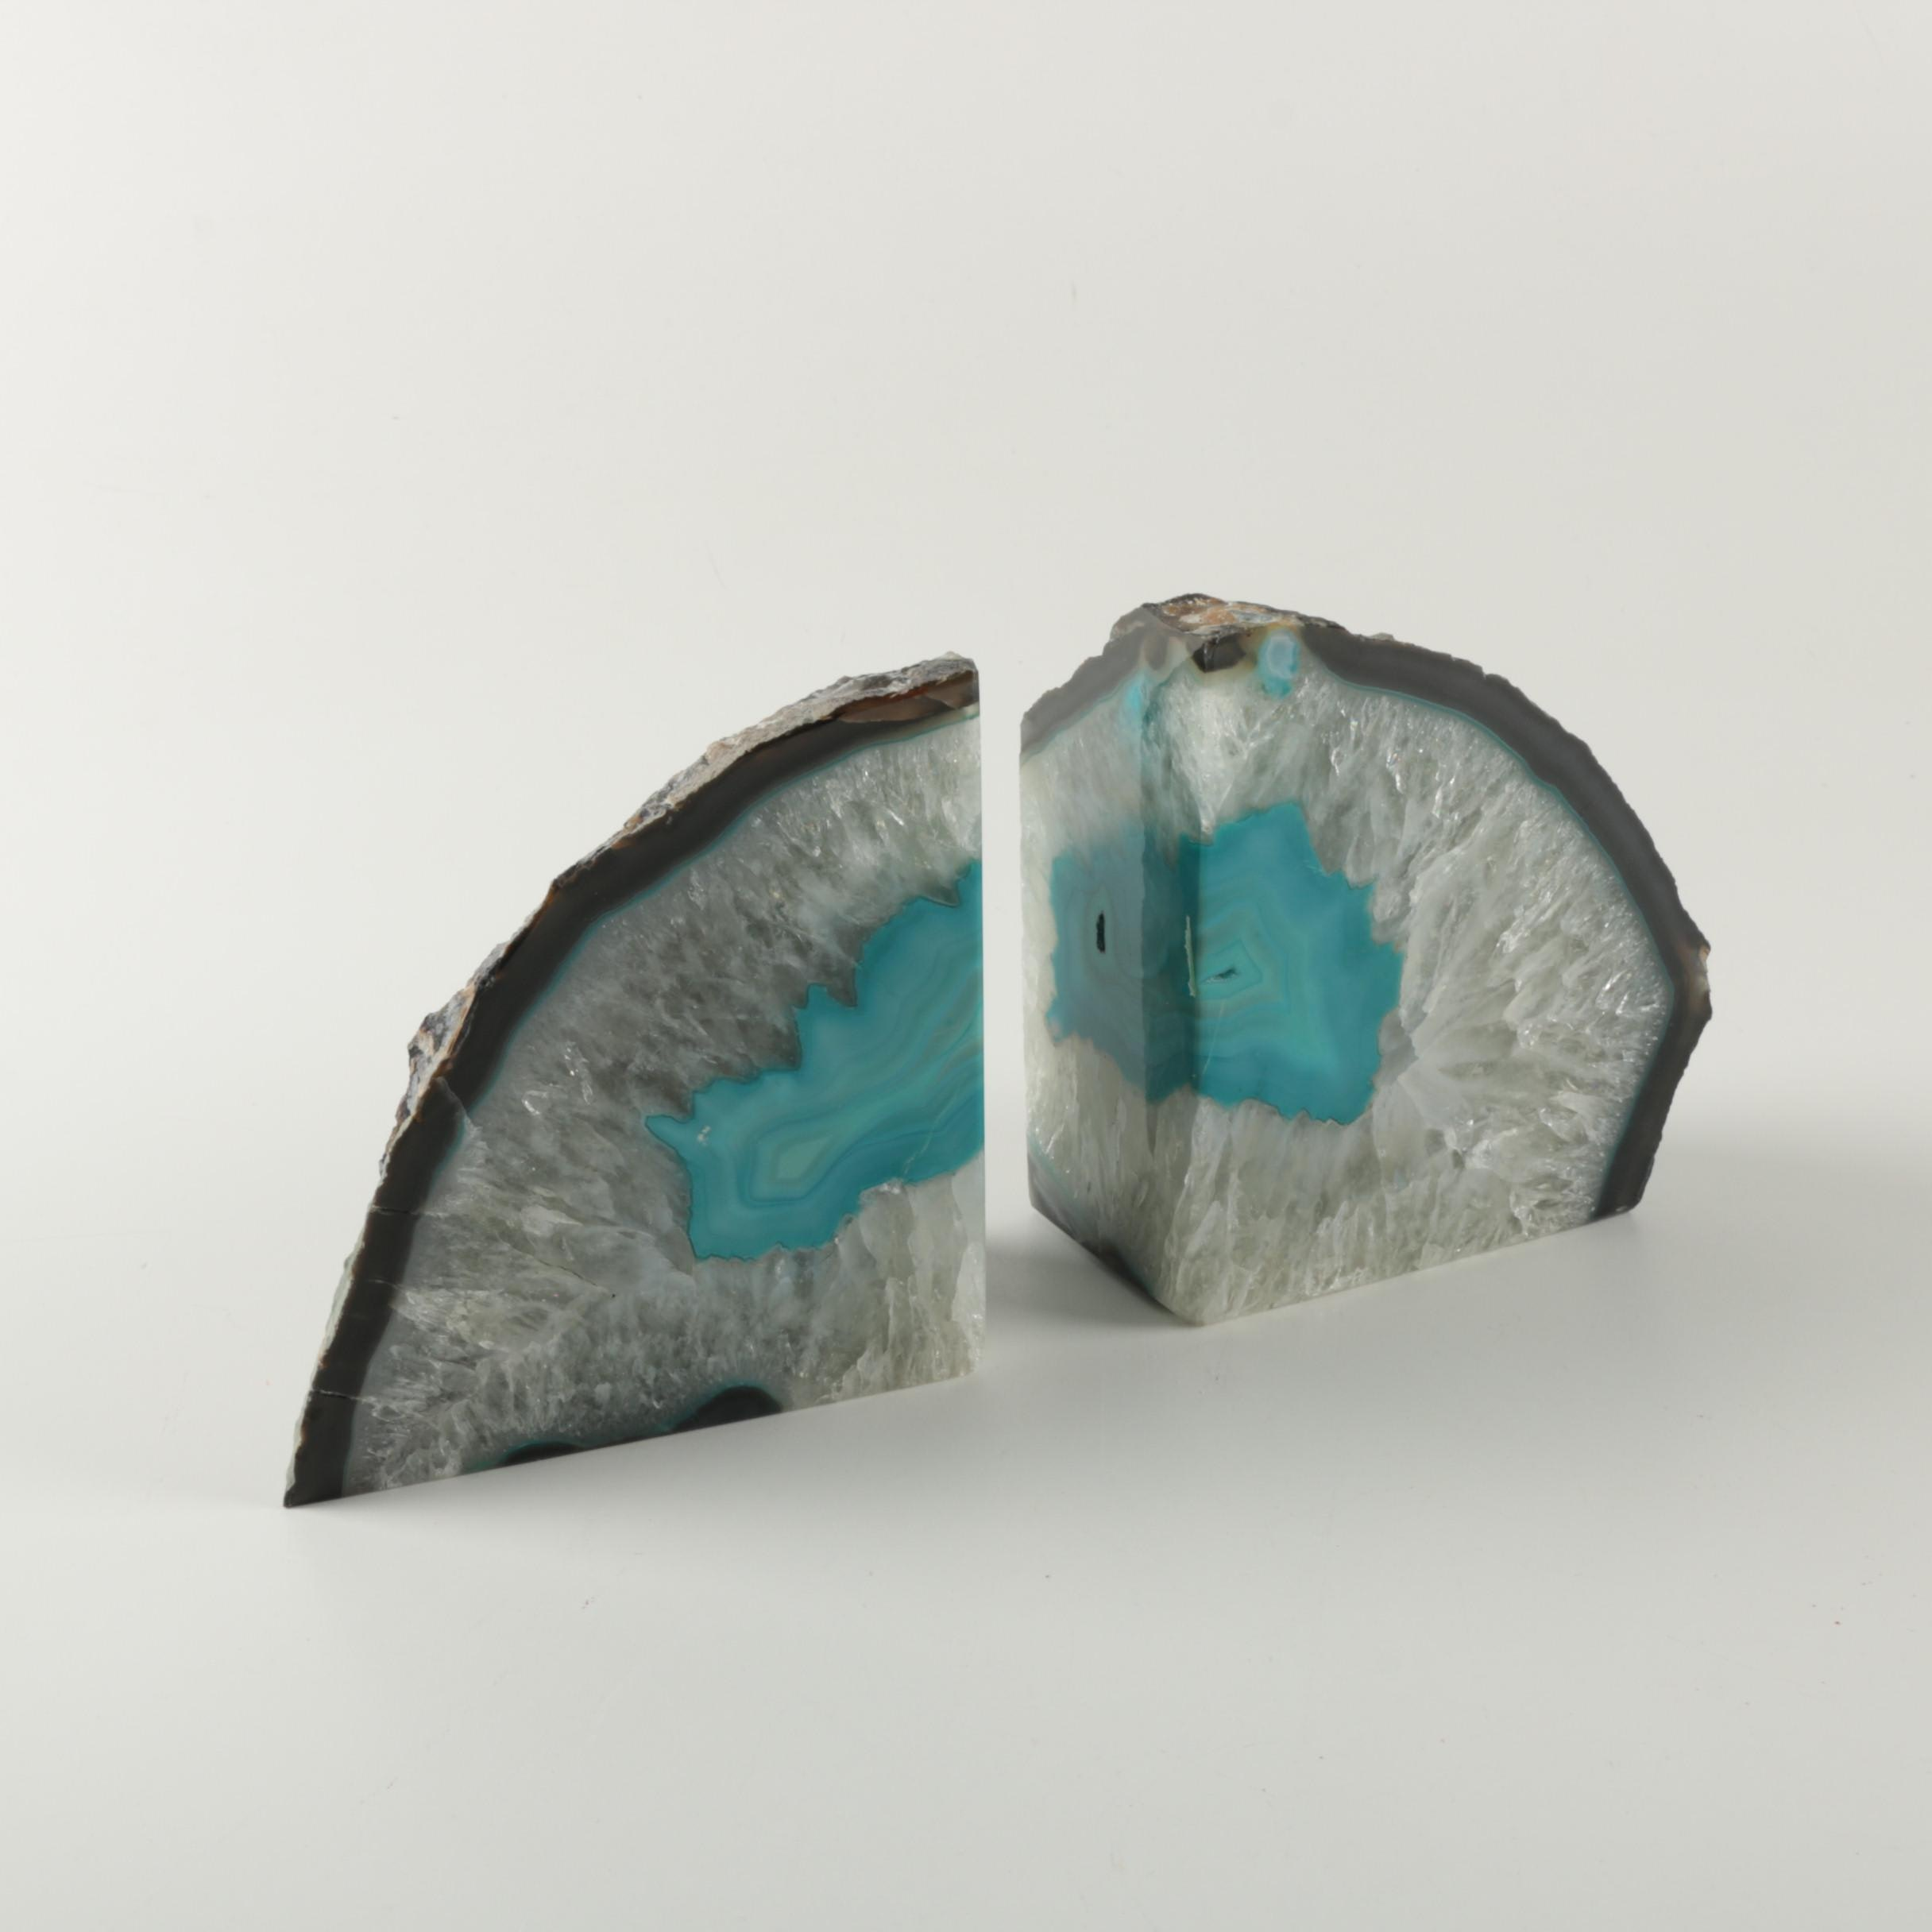 Dyed Geode Bookends